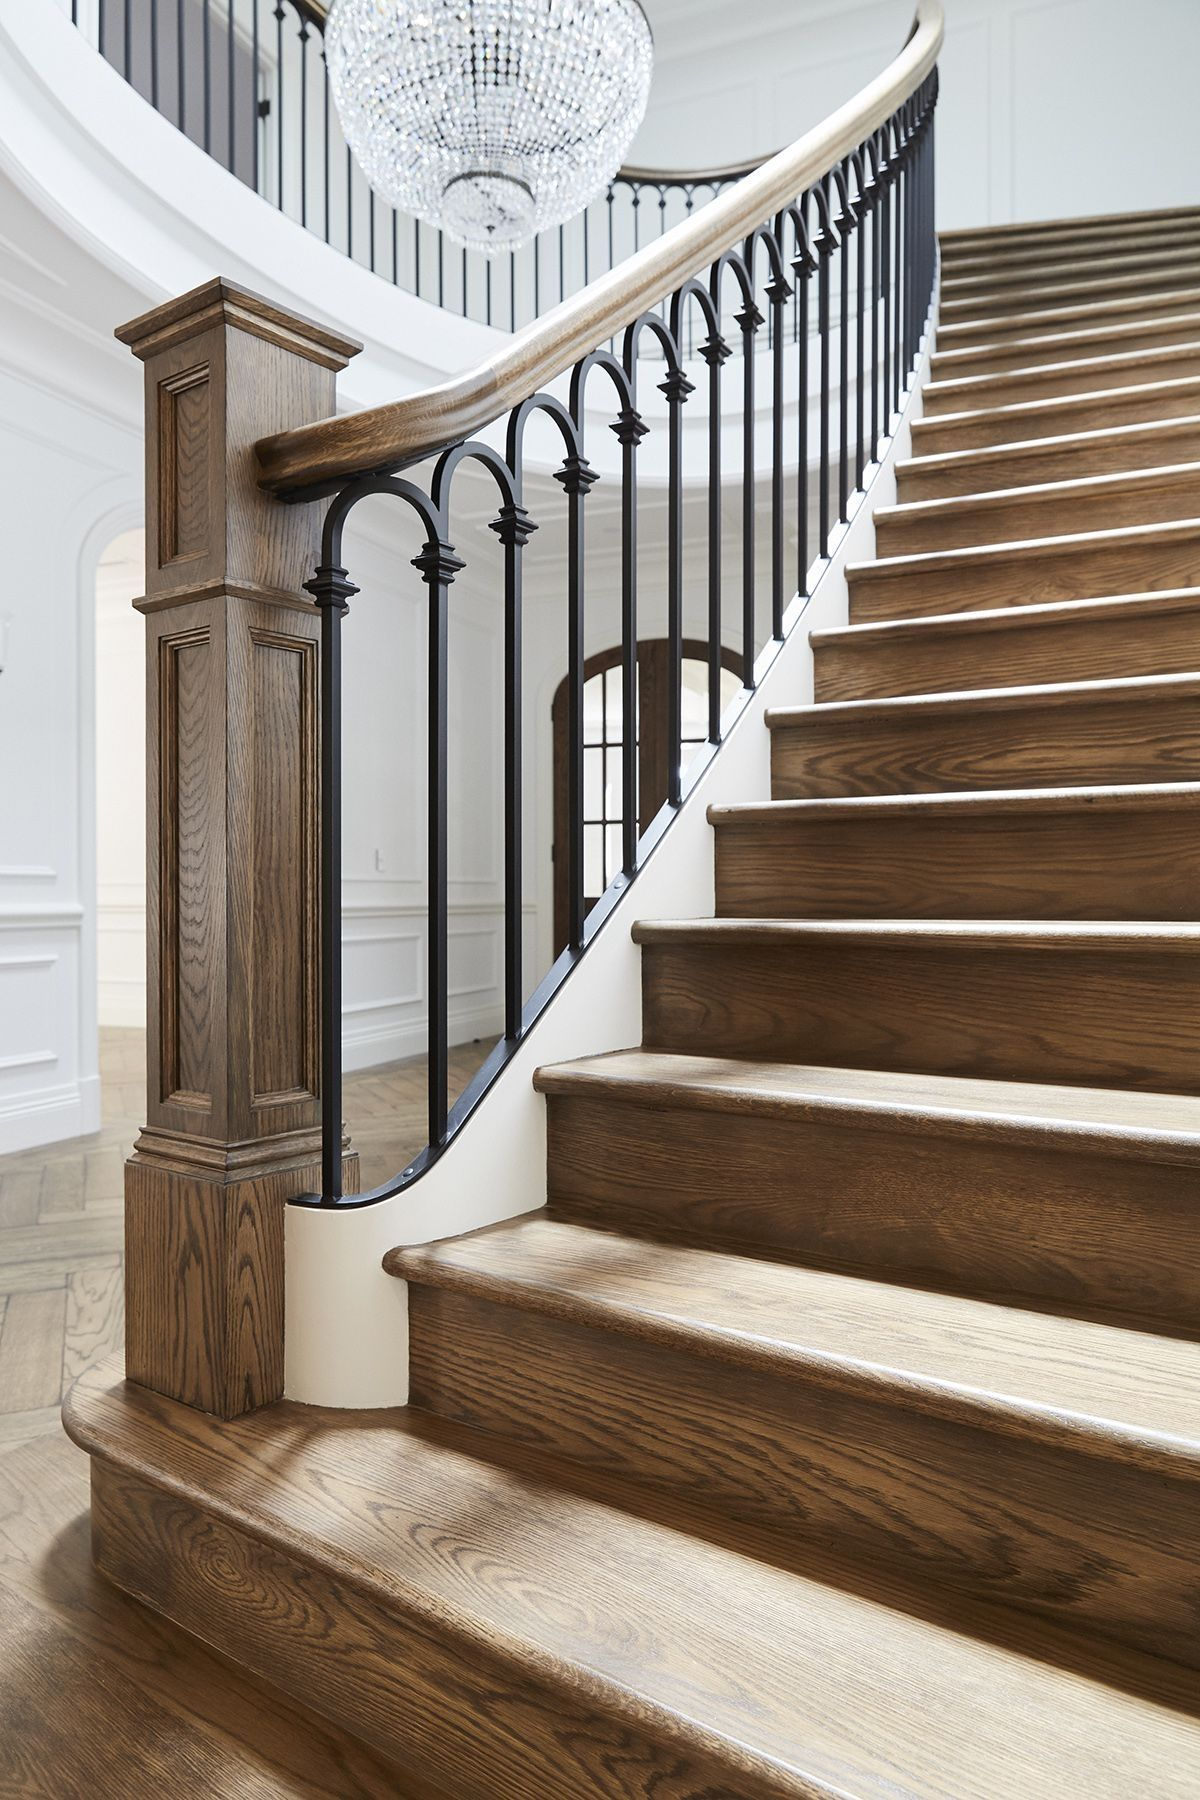 39 Beautifully Painted Stairs Design That We Love Homeridian Com Wrought Iron Stairs Iron Stair Railing Stairs Design